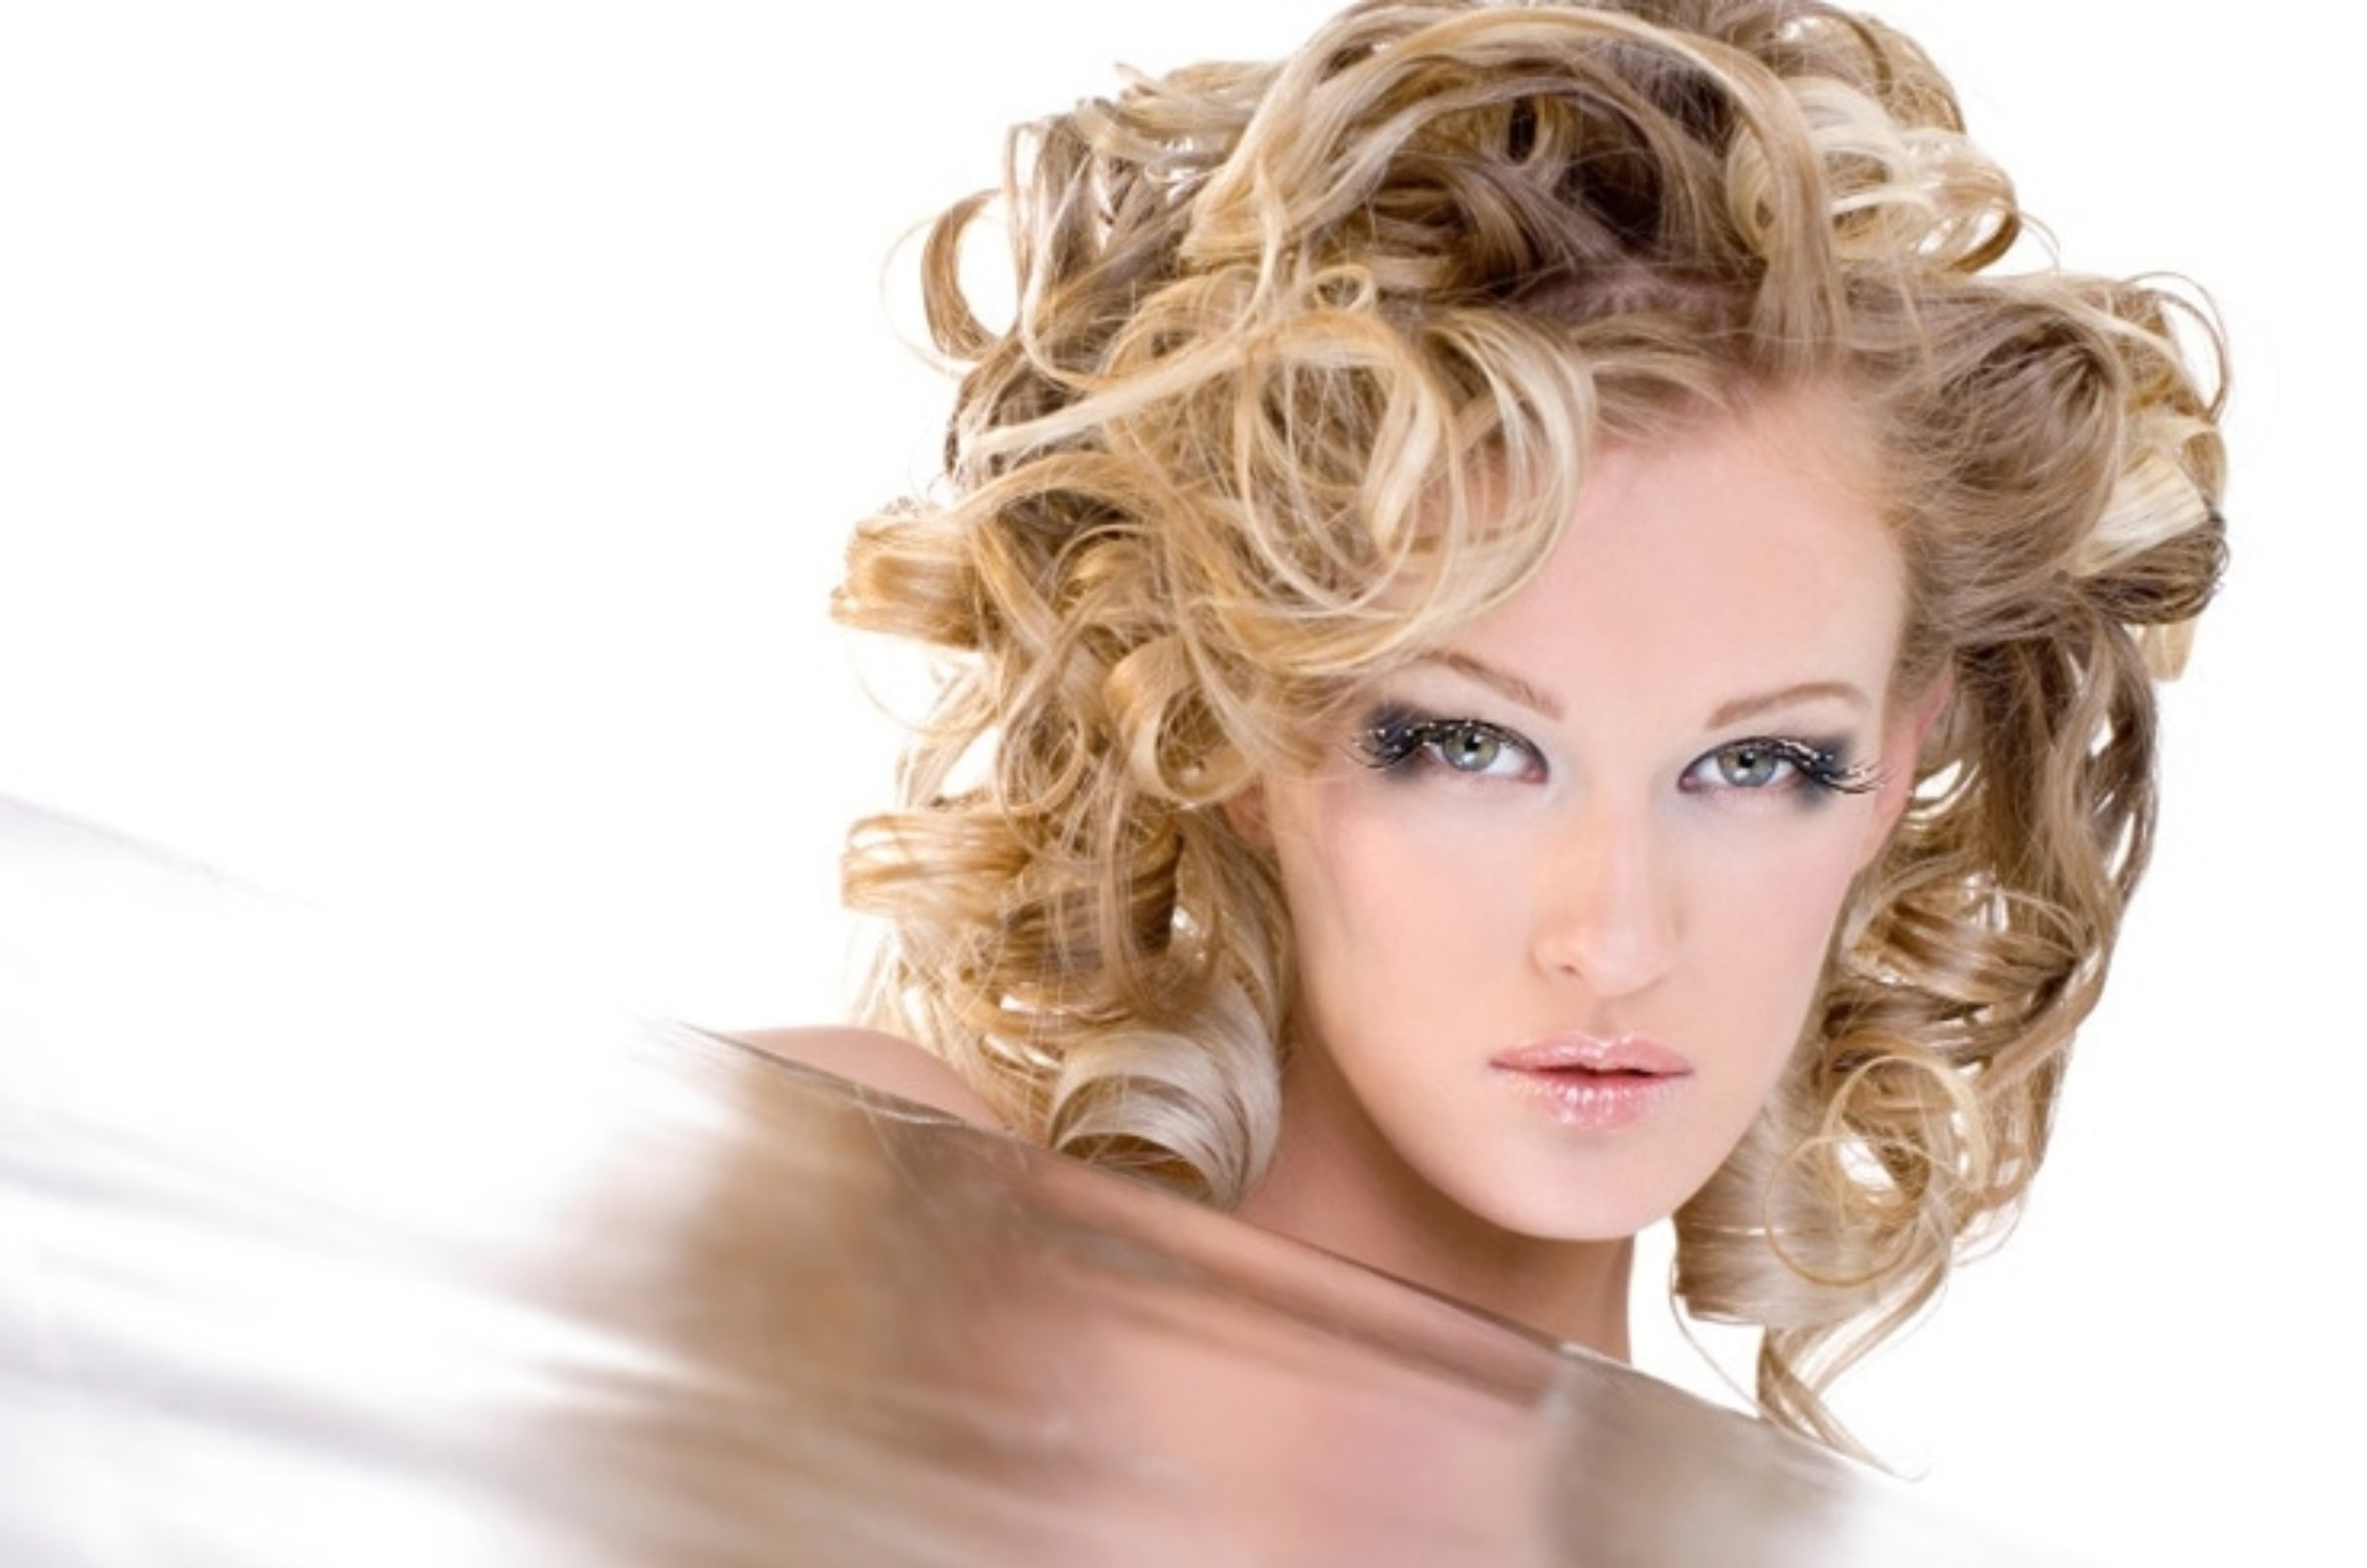 martinique Hairstyling enschede